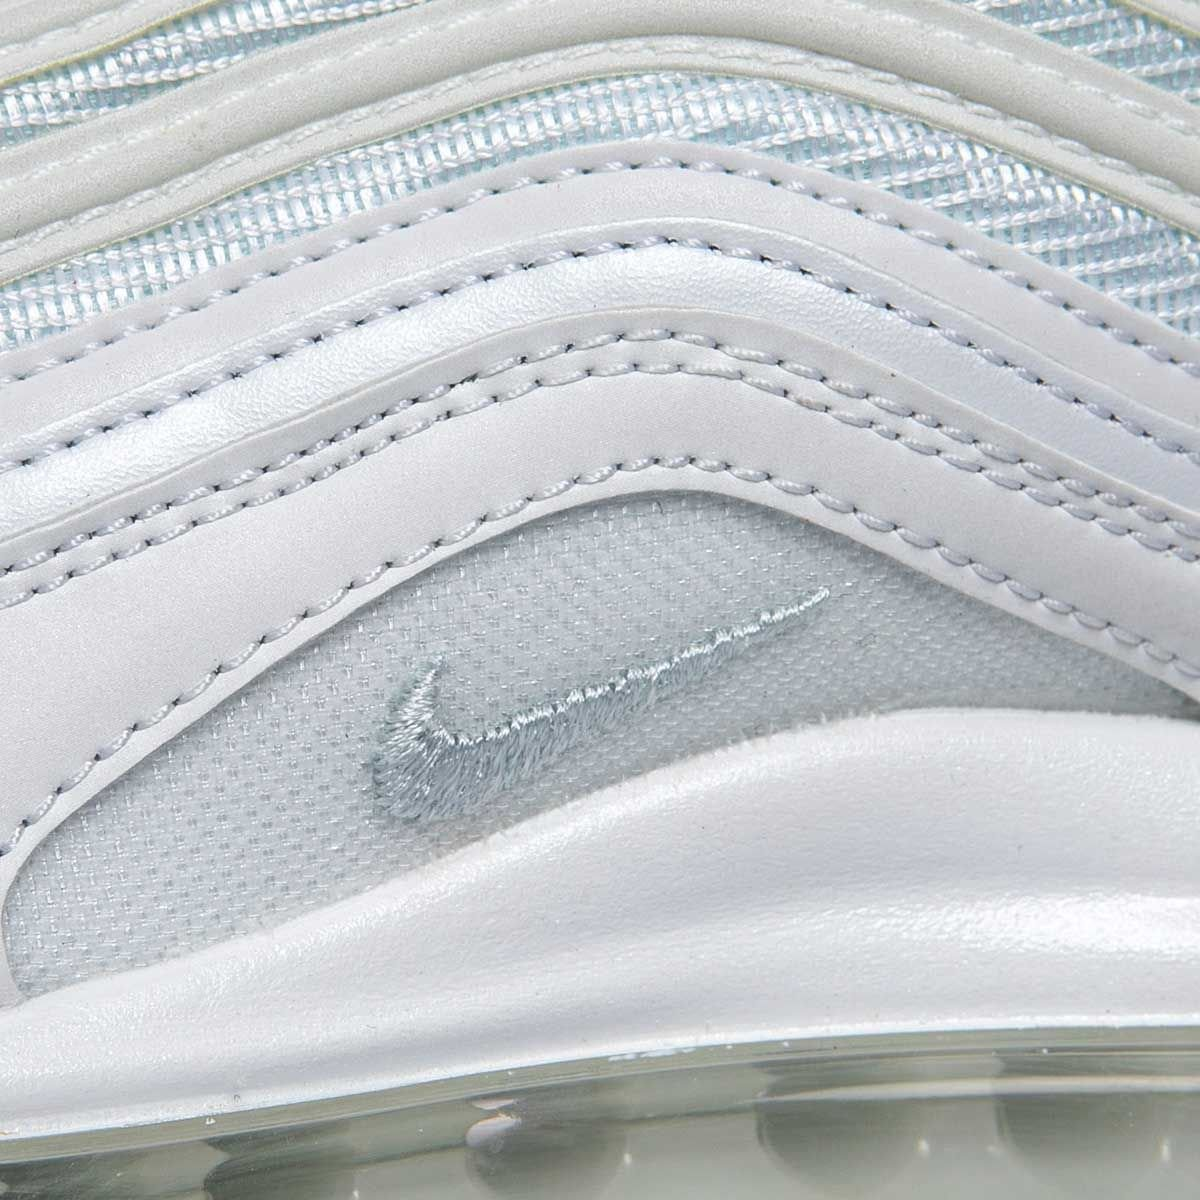 Sneakers Nike WMNS Air Max 97 white white pure platinum (921733 100)